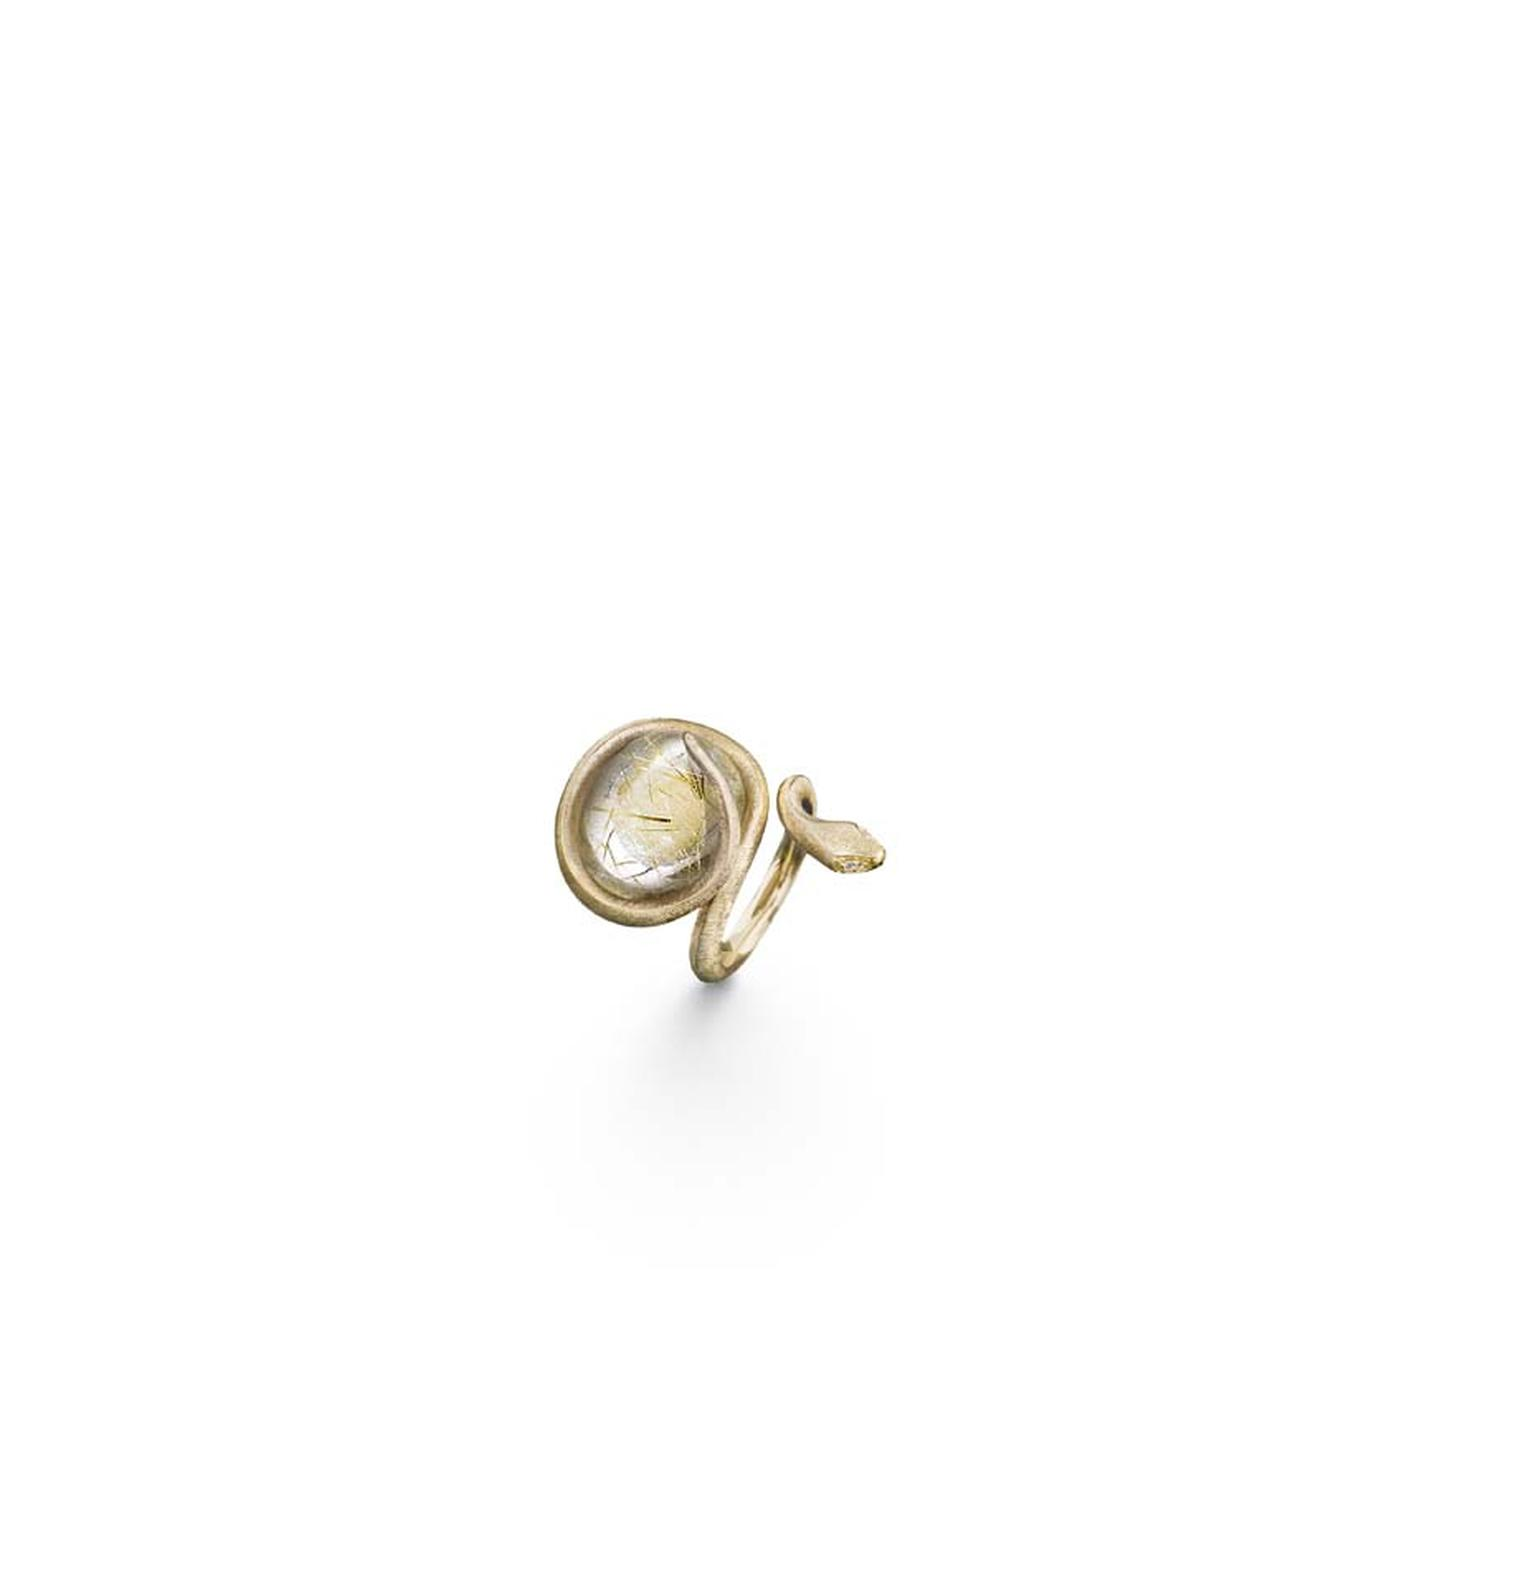 Ole Lynggaard 18ct yellow gold ring with rutiile quartz stone and 4 diamonds.